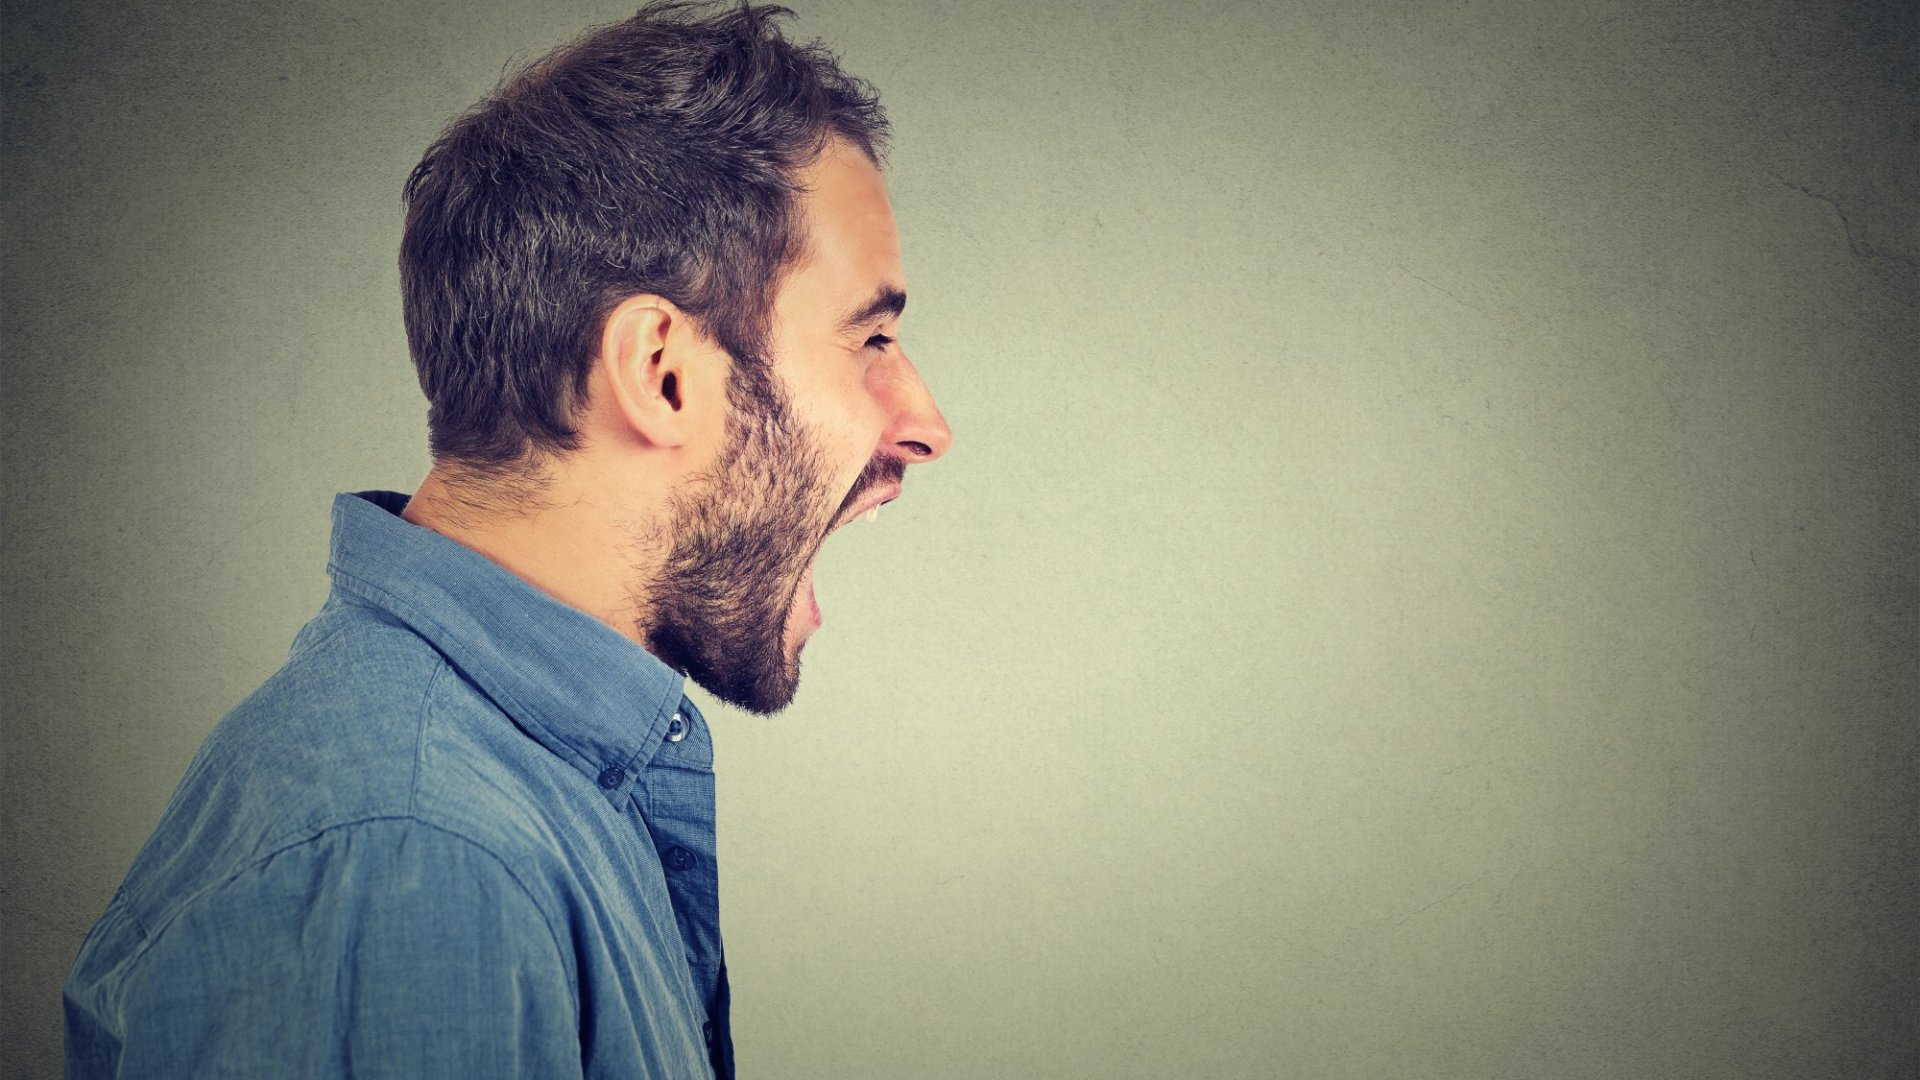 If You're Brutally Honest, You're Probably a Jerk